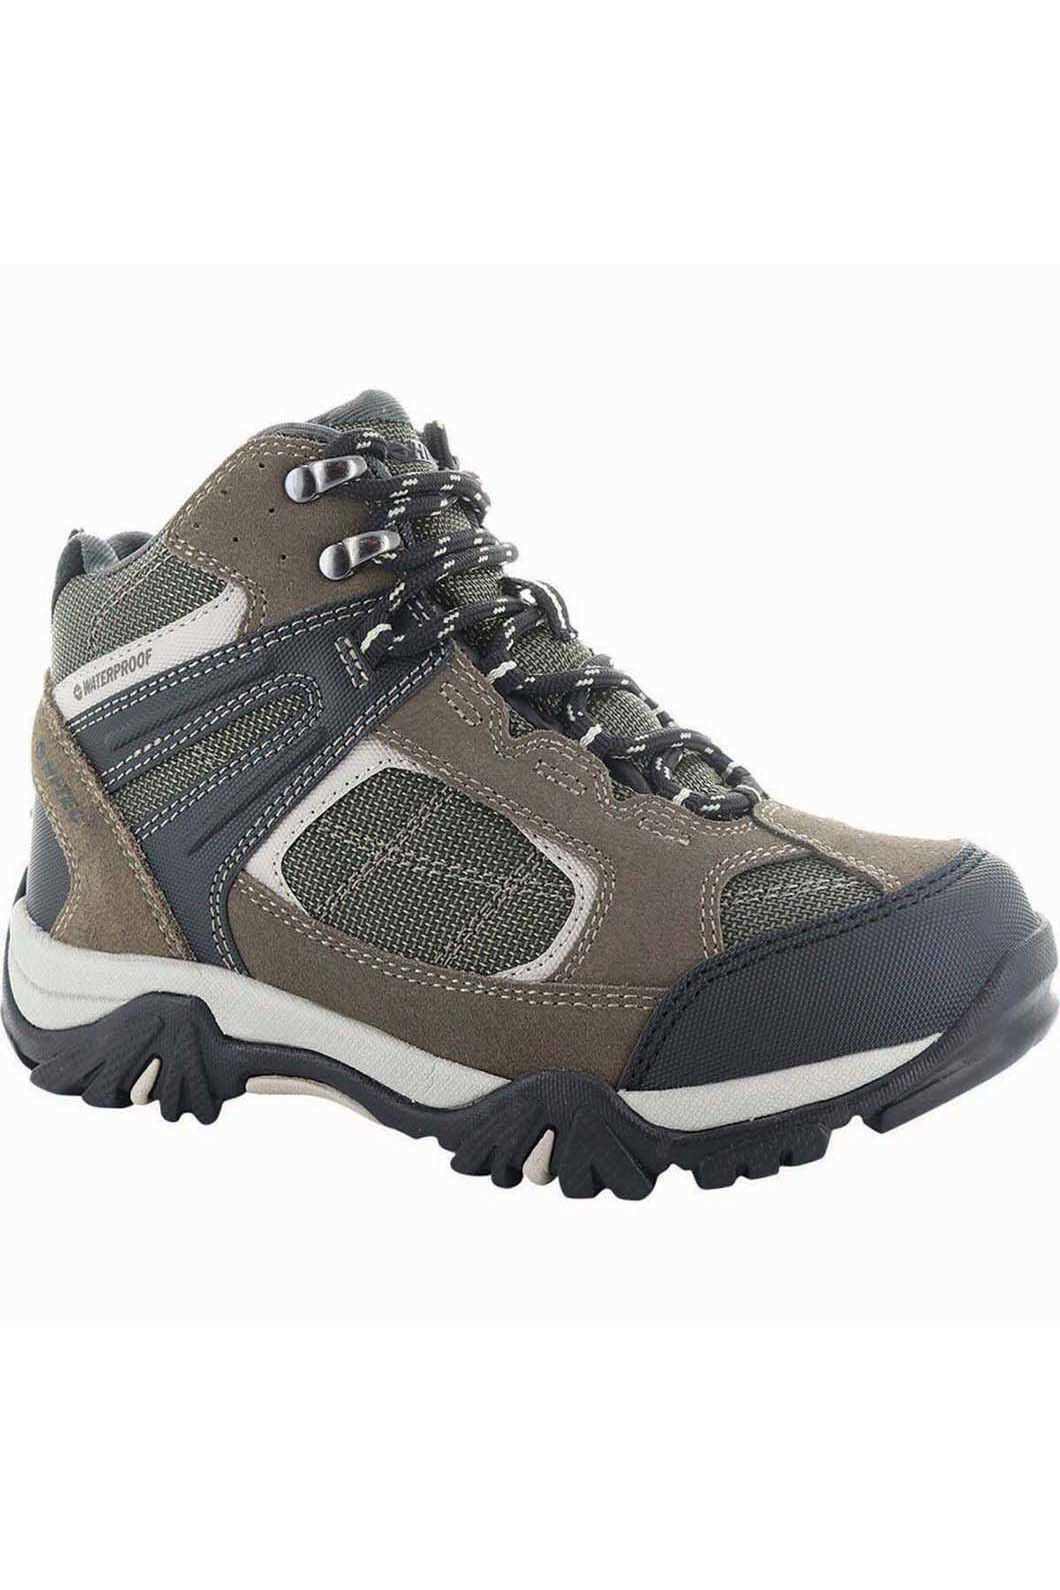 Hi-Tec Kids' Altitude Lite Hiking Boot, DarkTaupe/OliveNight/WarmGrey, hi-res